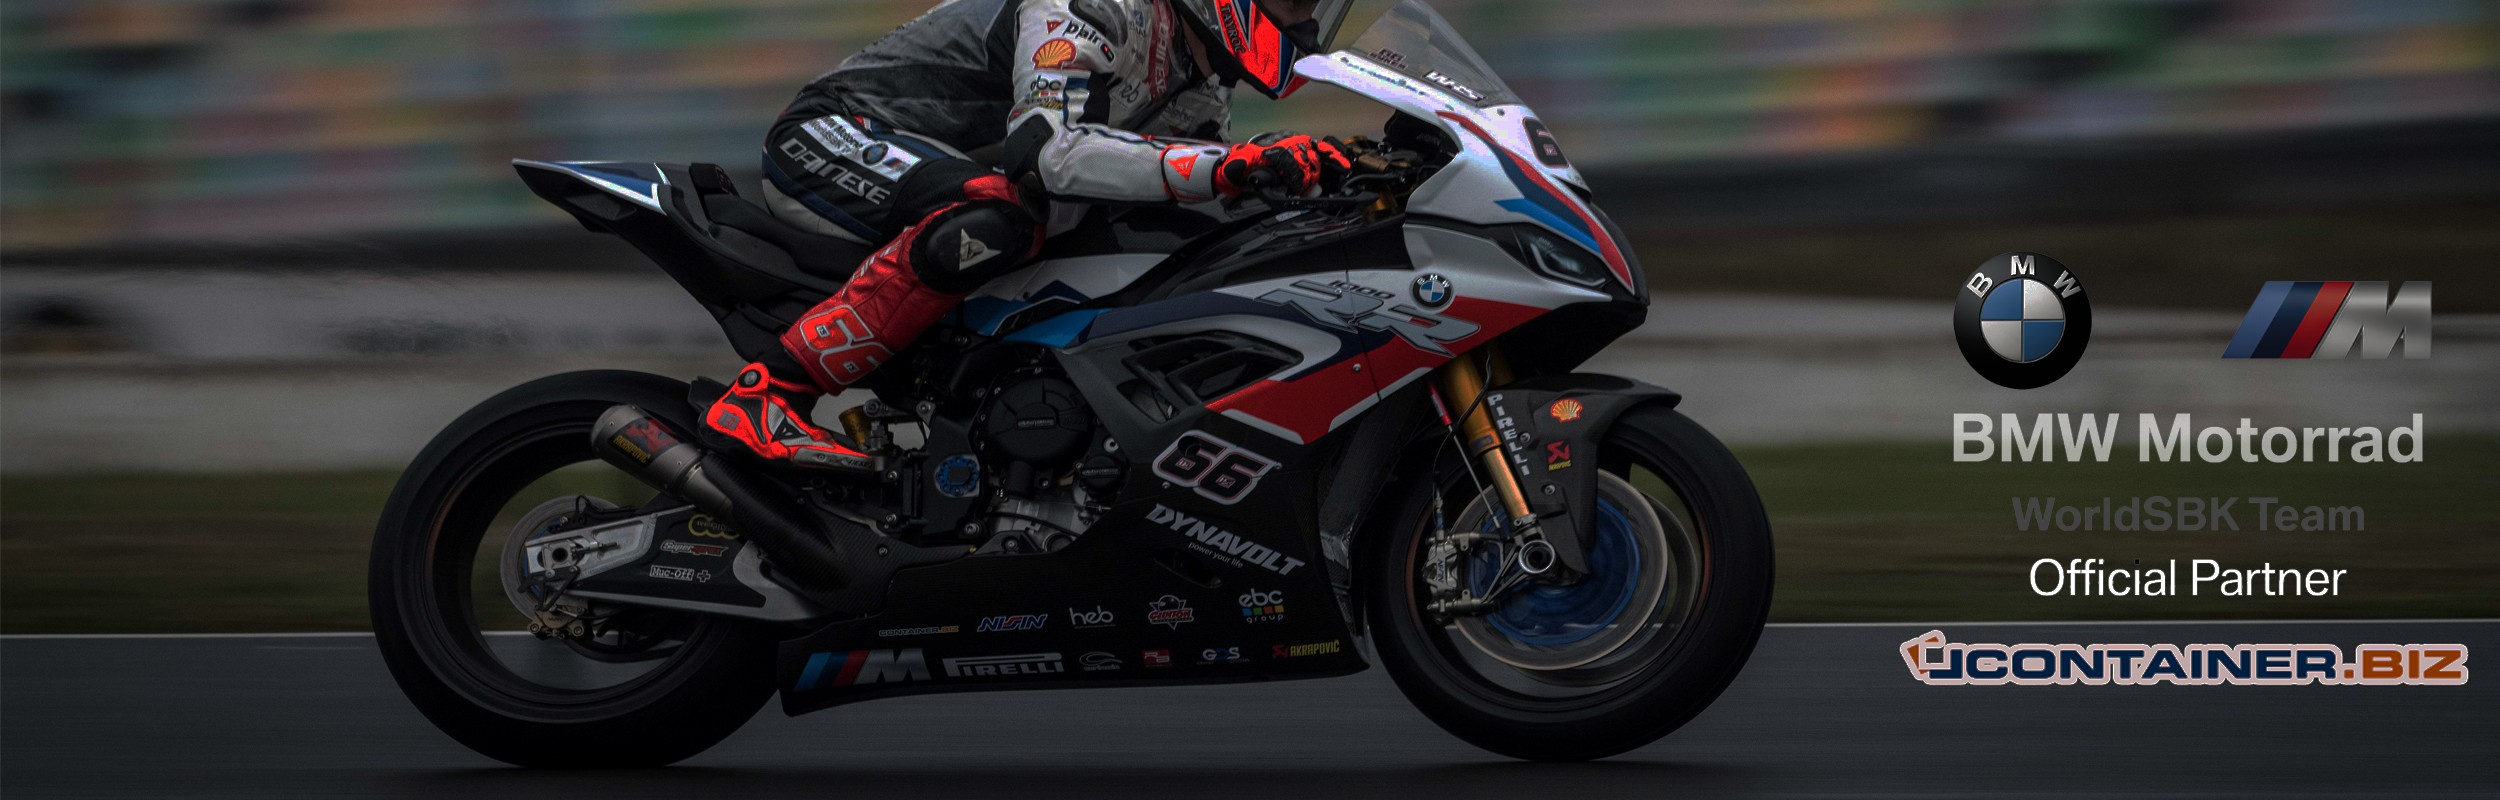 Partner BMW Superbike